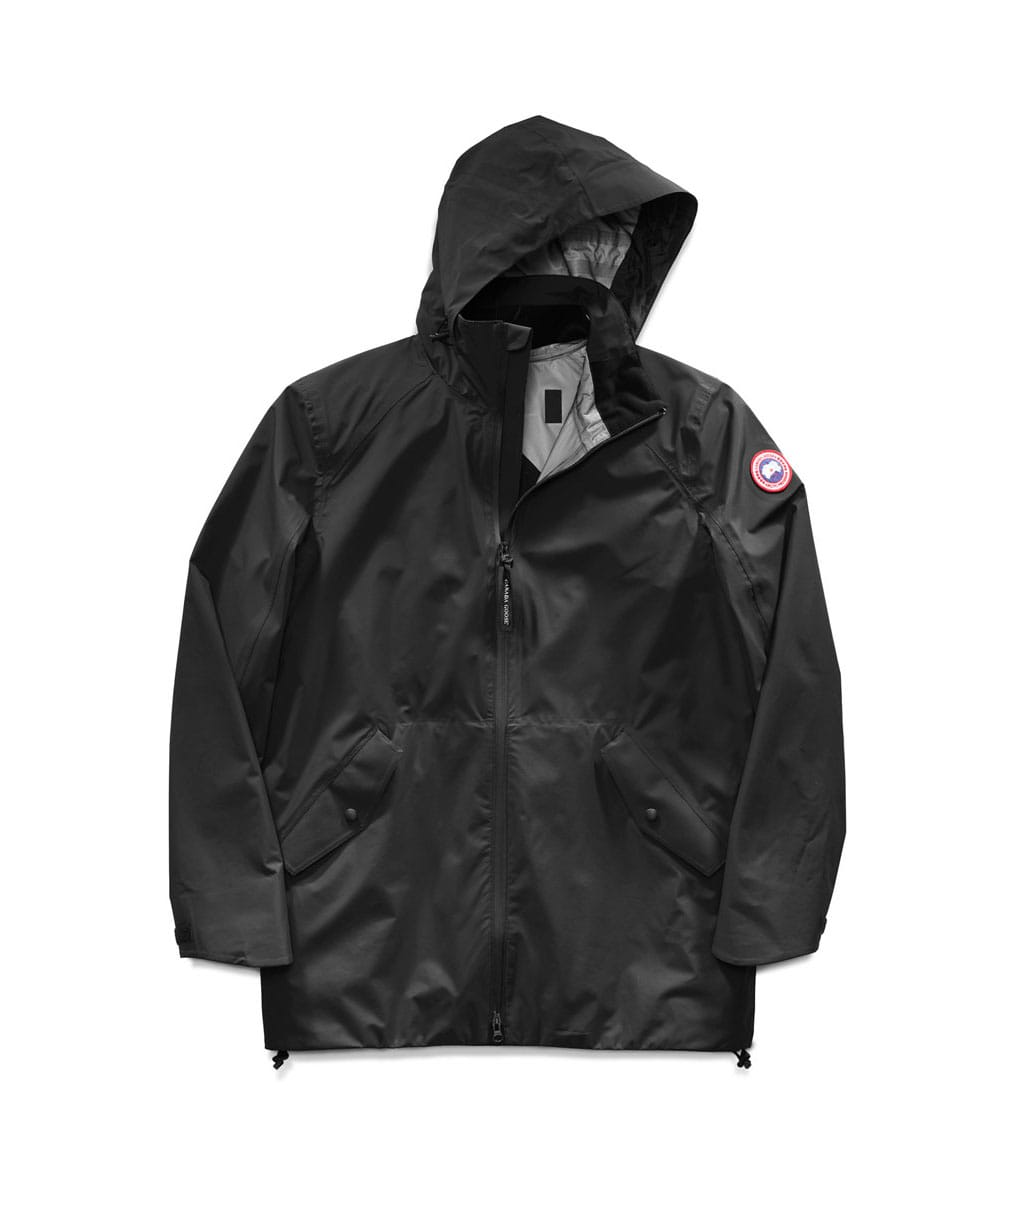 RIVERHEAD JACKET(M)